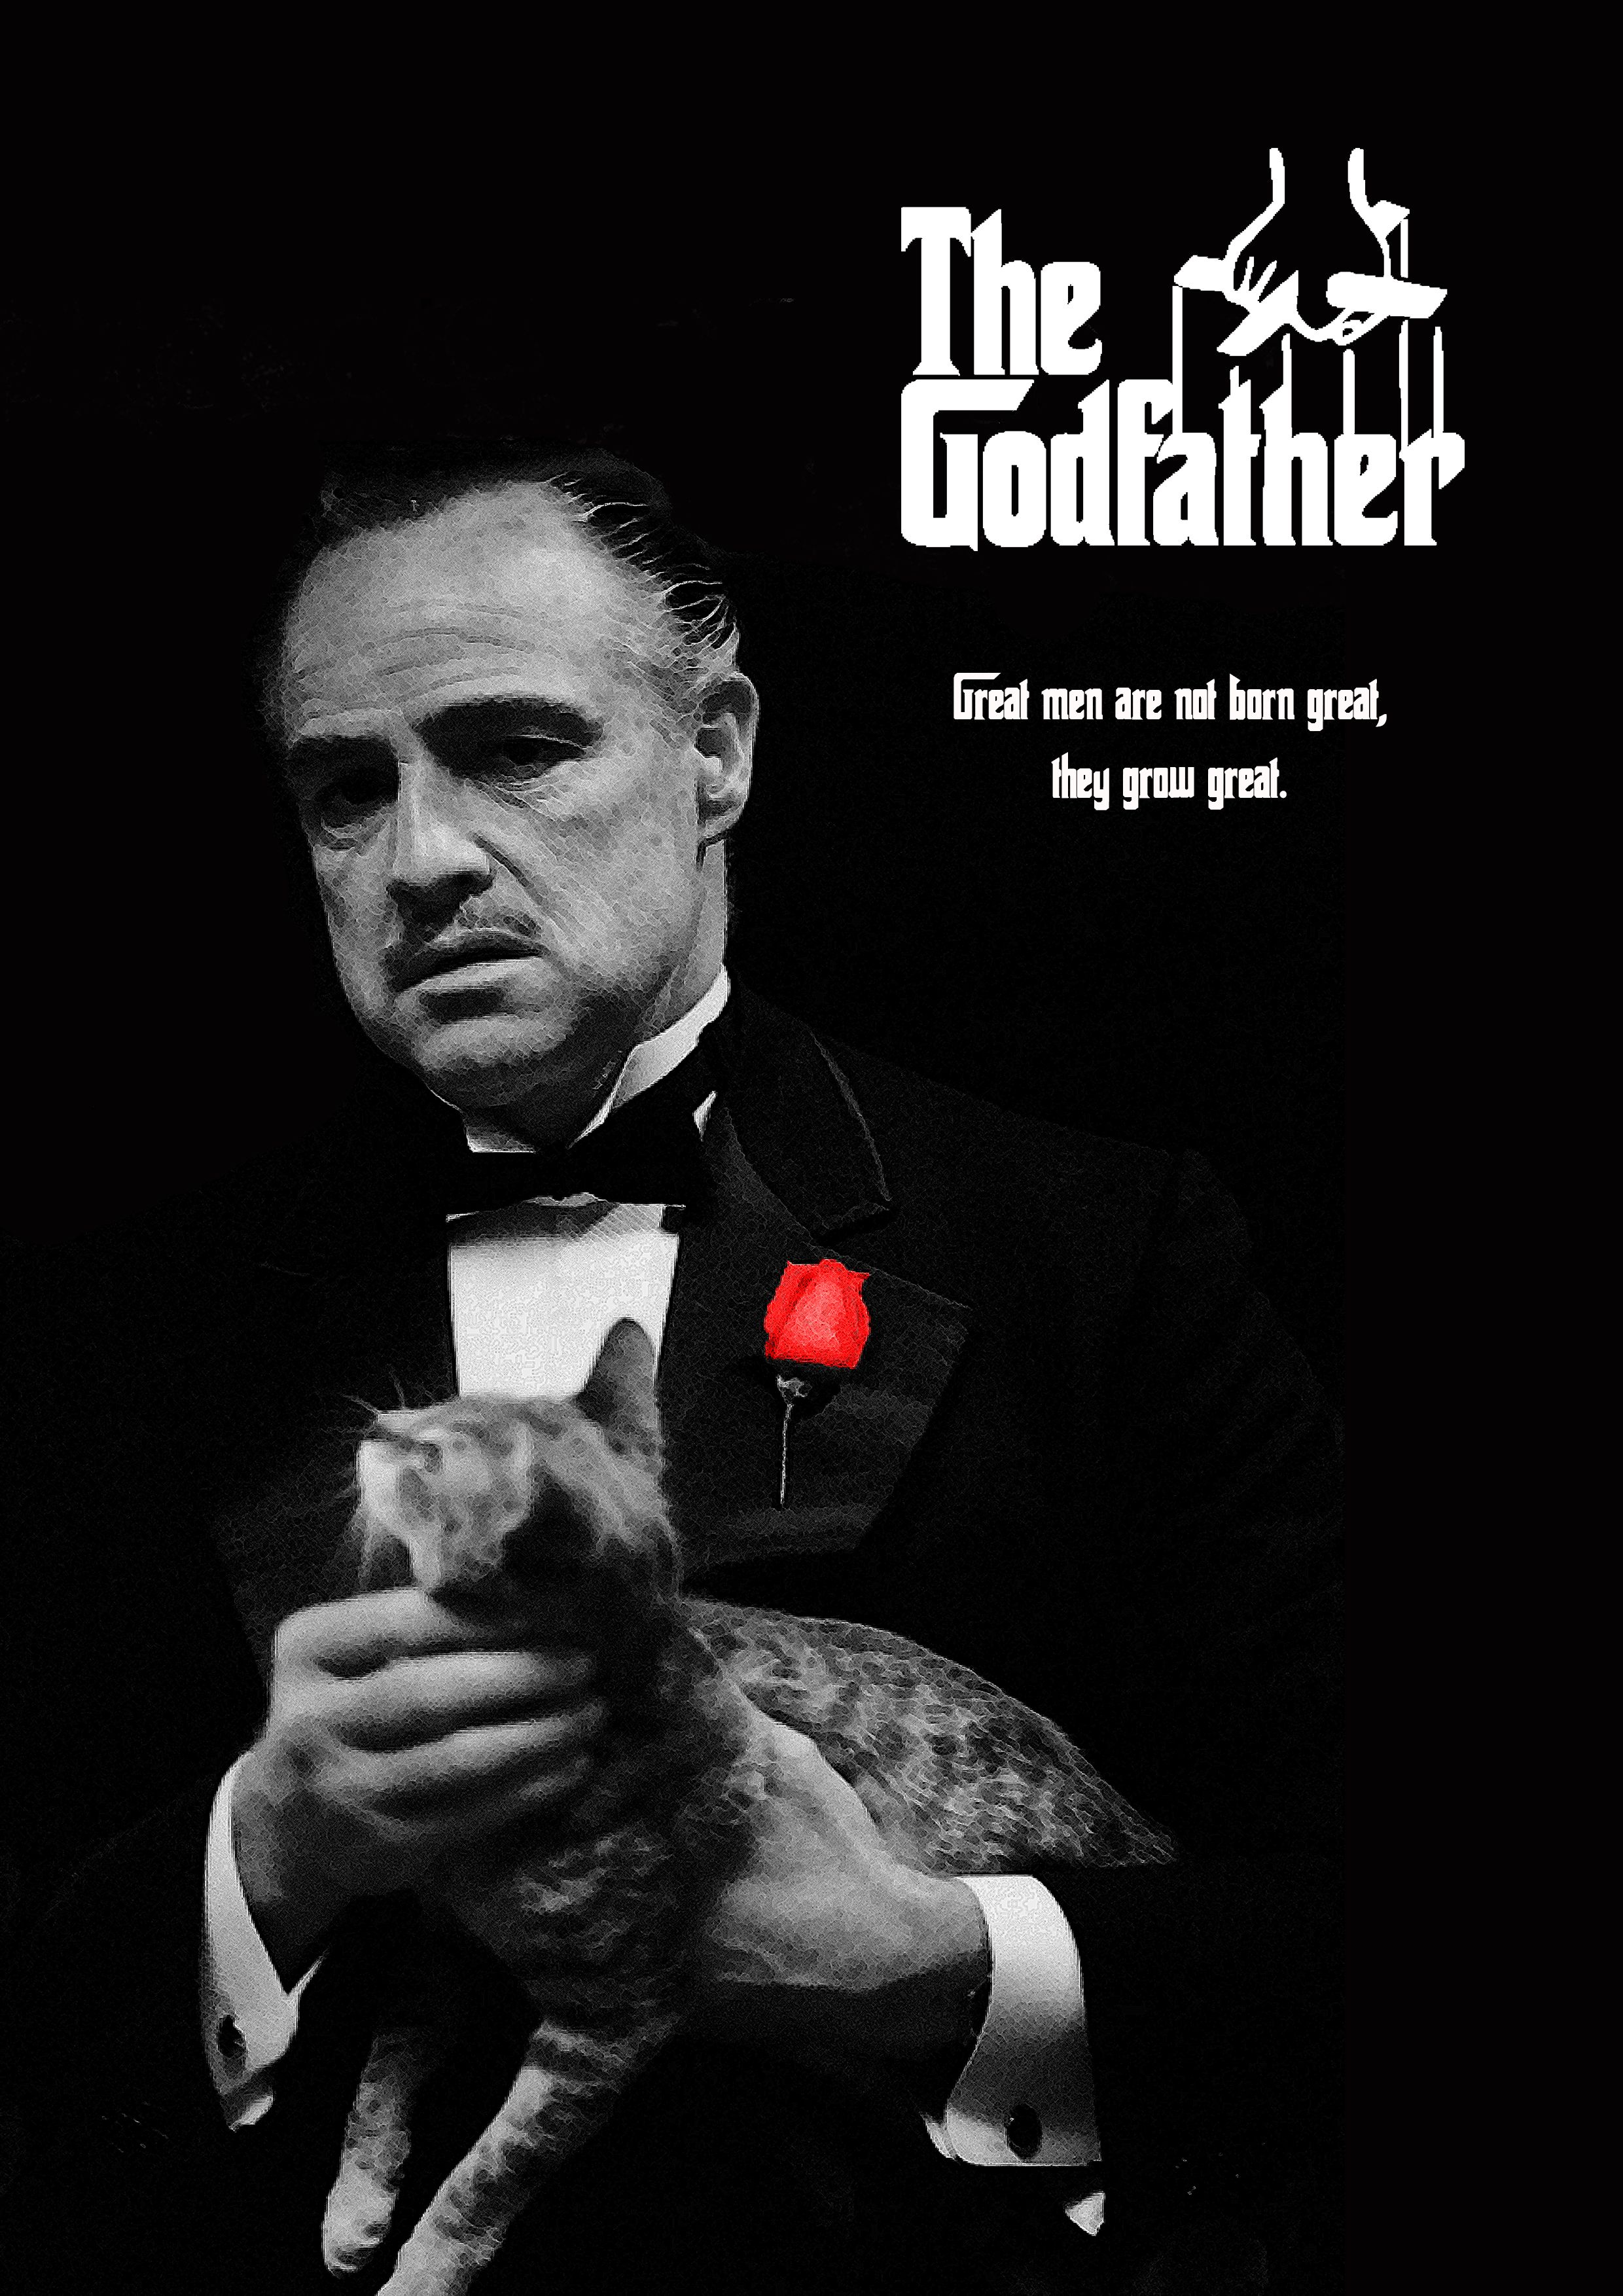 Movie poster of the godfather